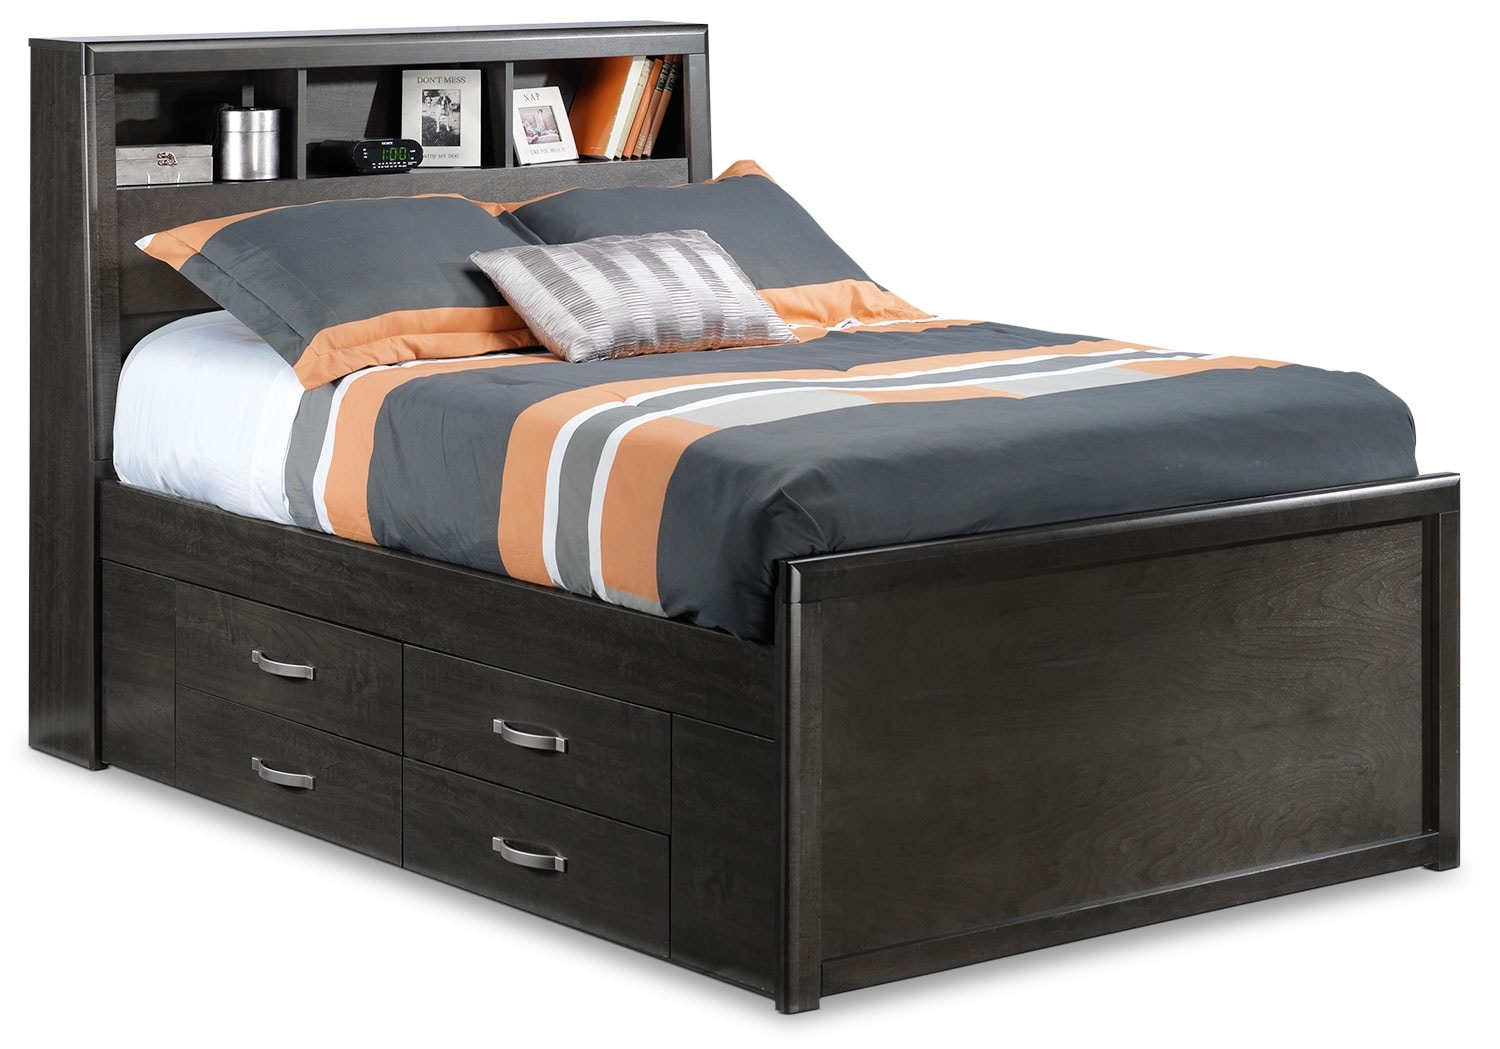 Dessy Junior Full Storage Bed Charcoal Leon39s